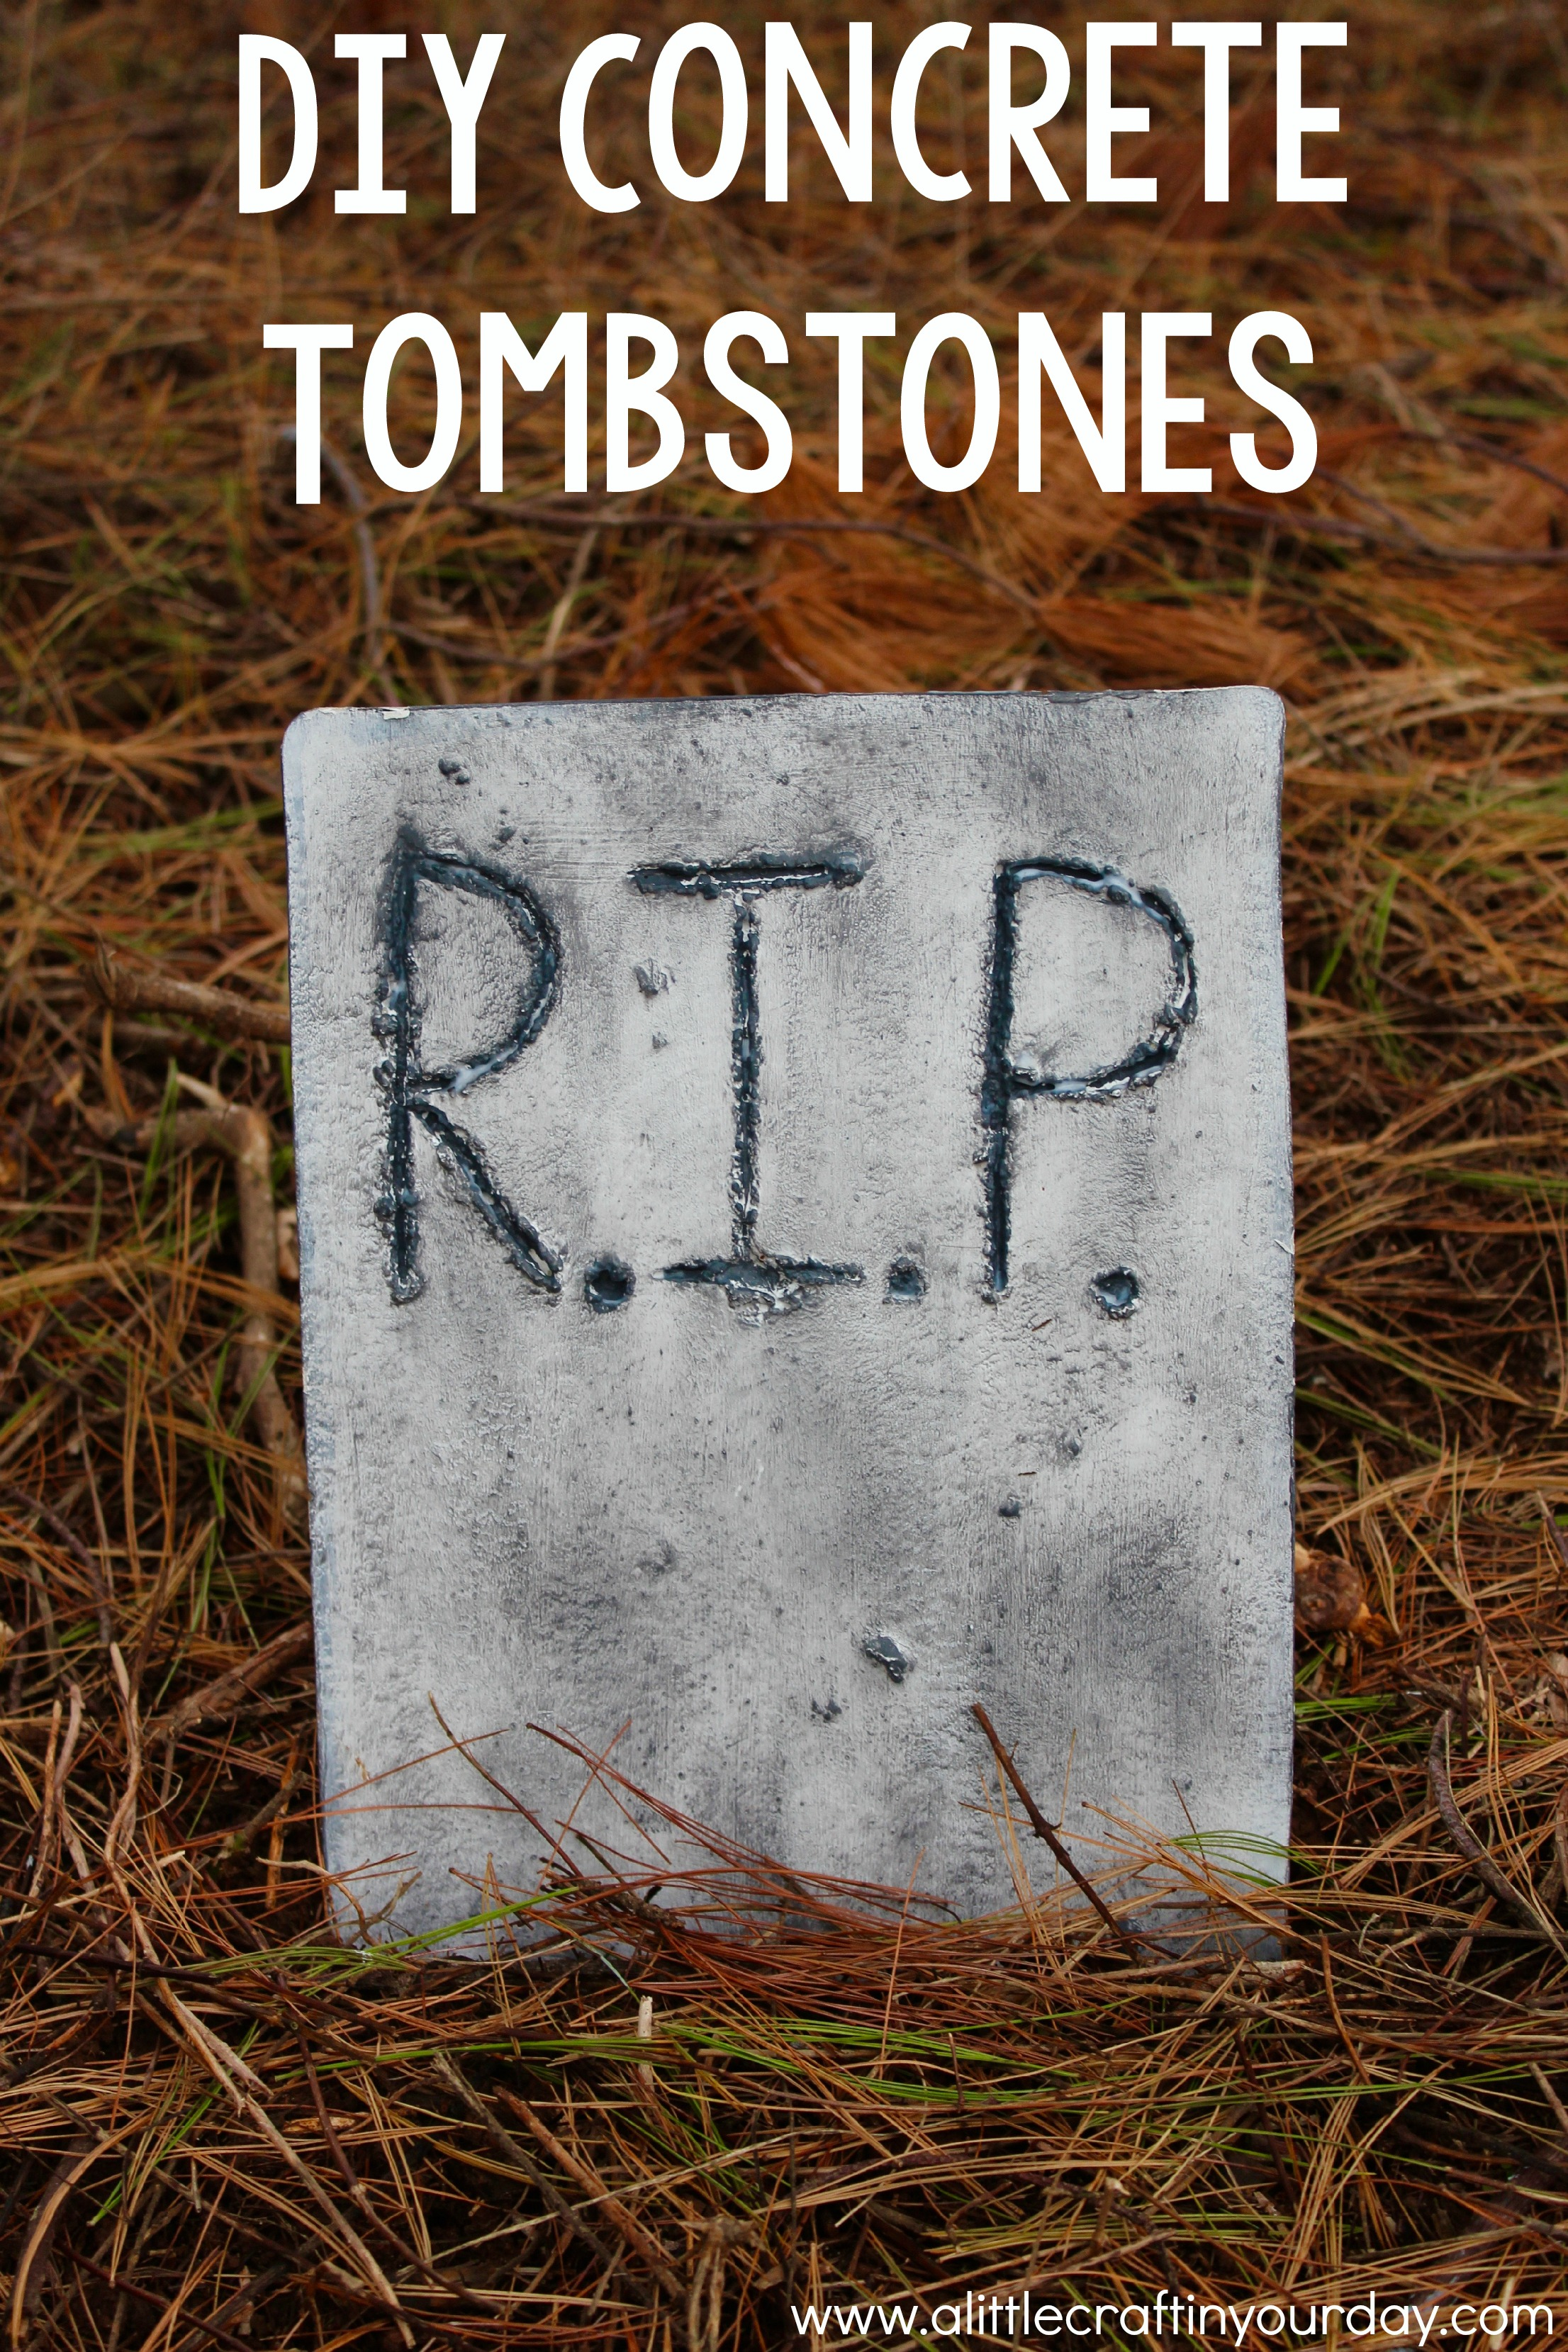 diy concrete tombstones - a little craft in your day